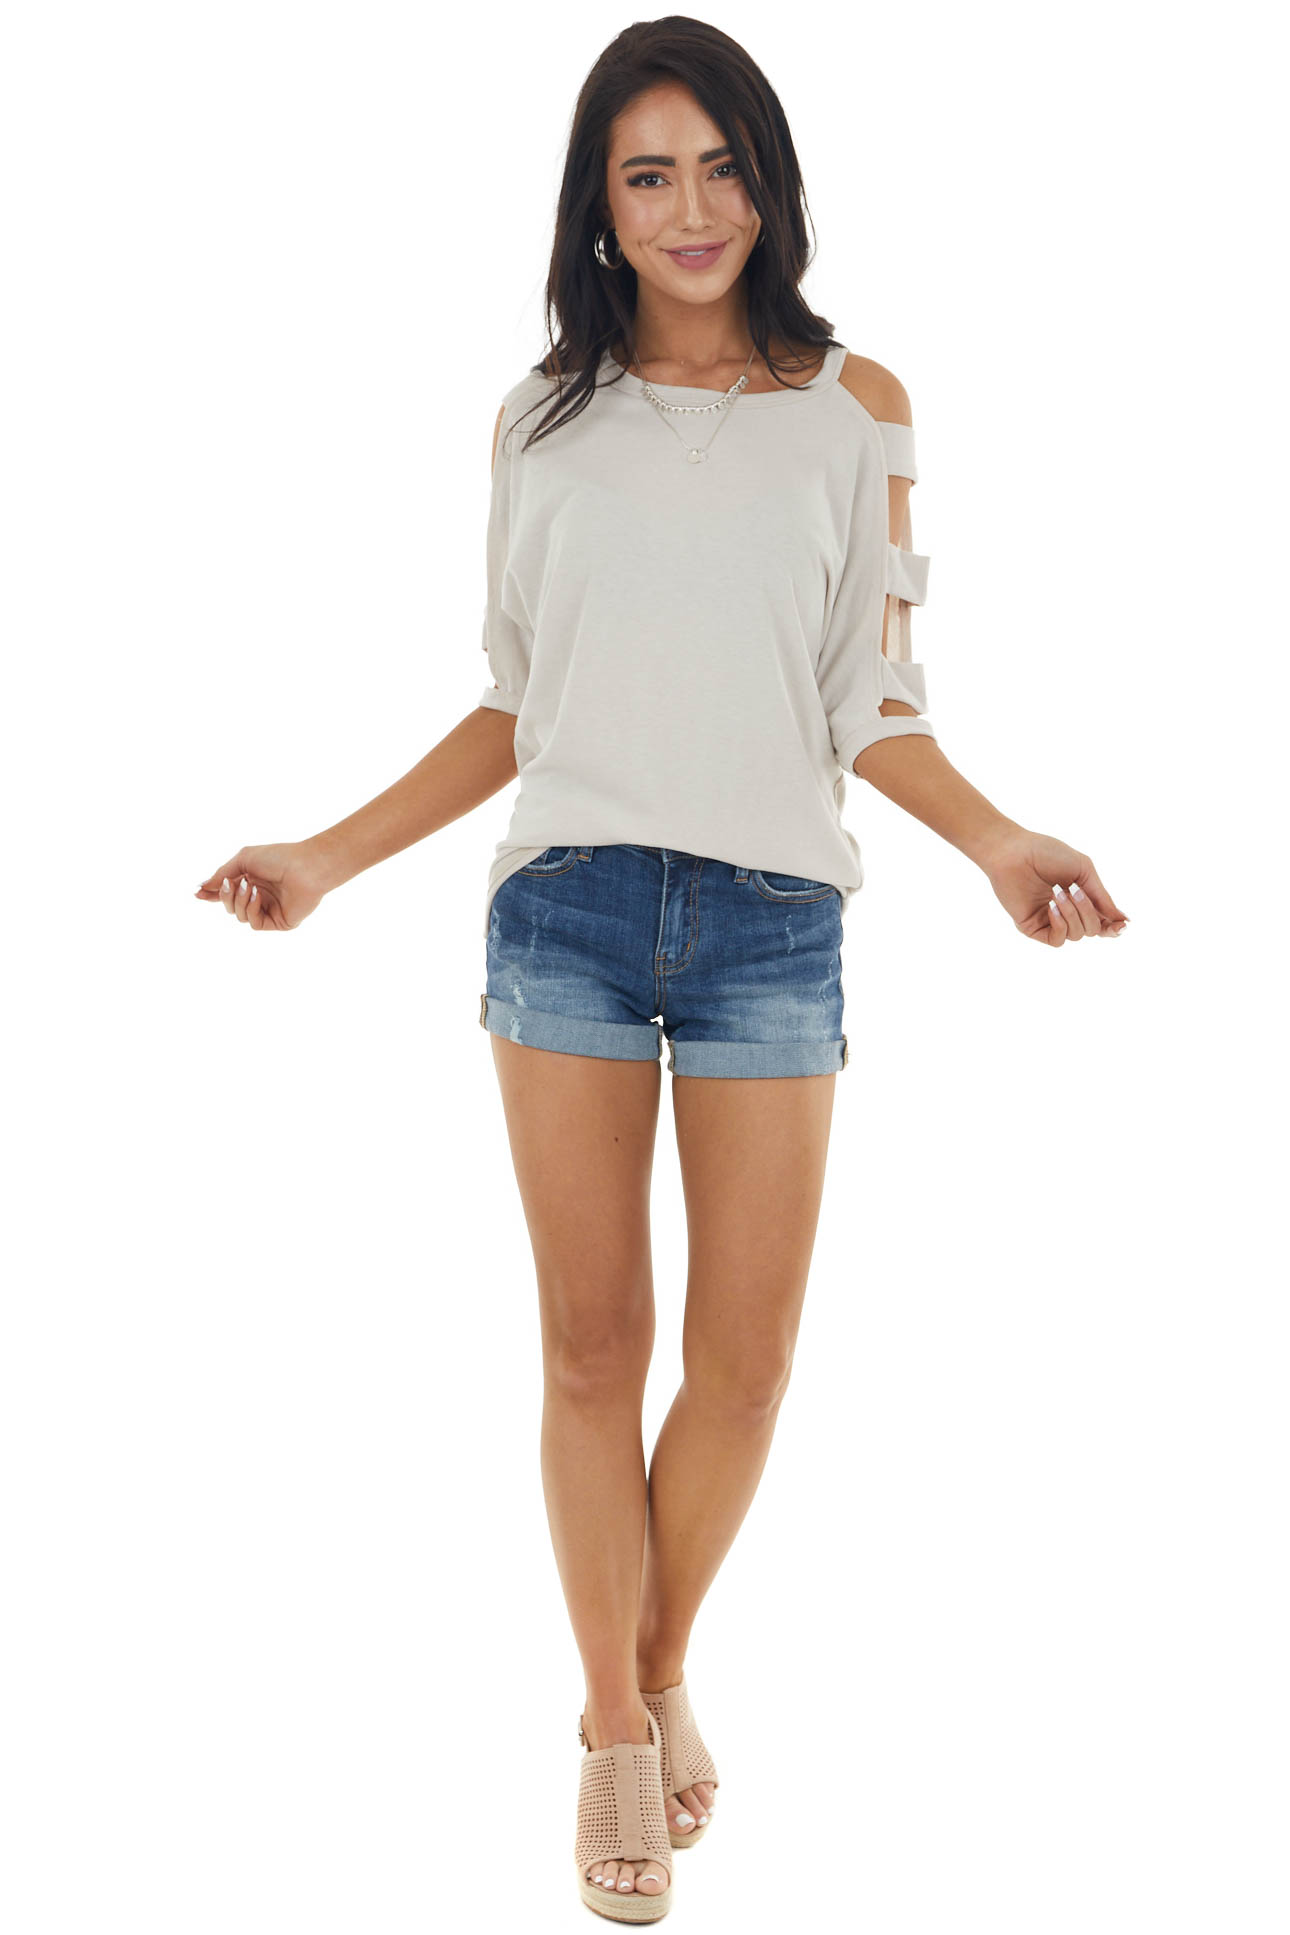 Oatmeal Knit Top with Ladder Cut Out Half Length Sleeves